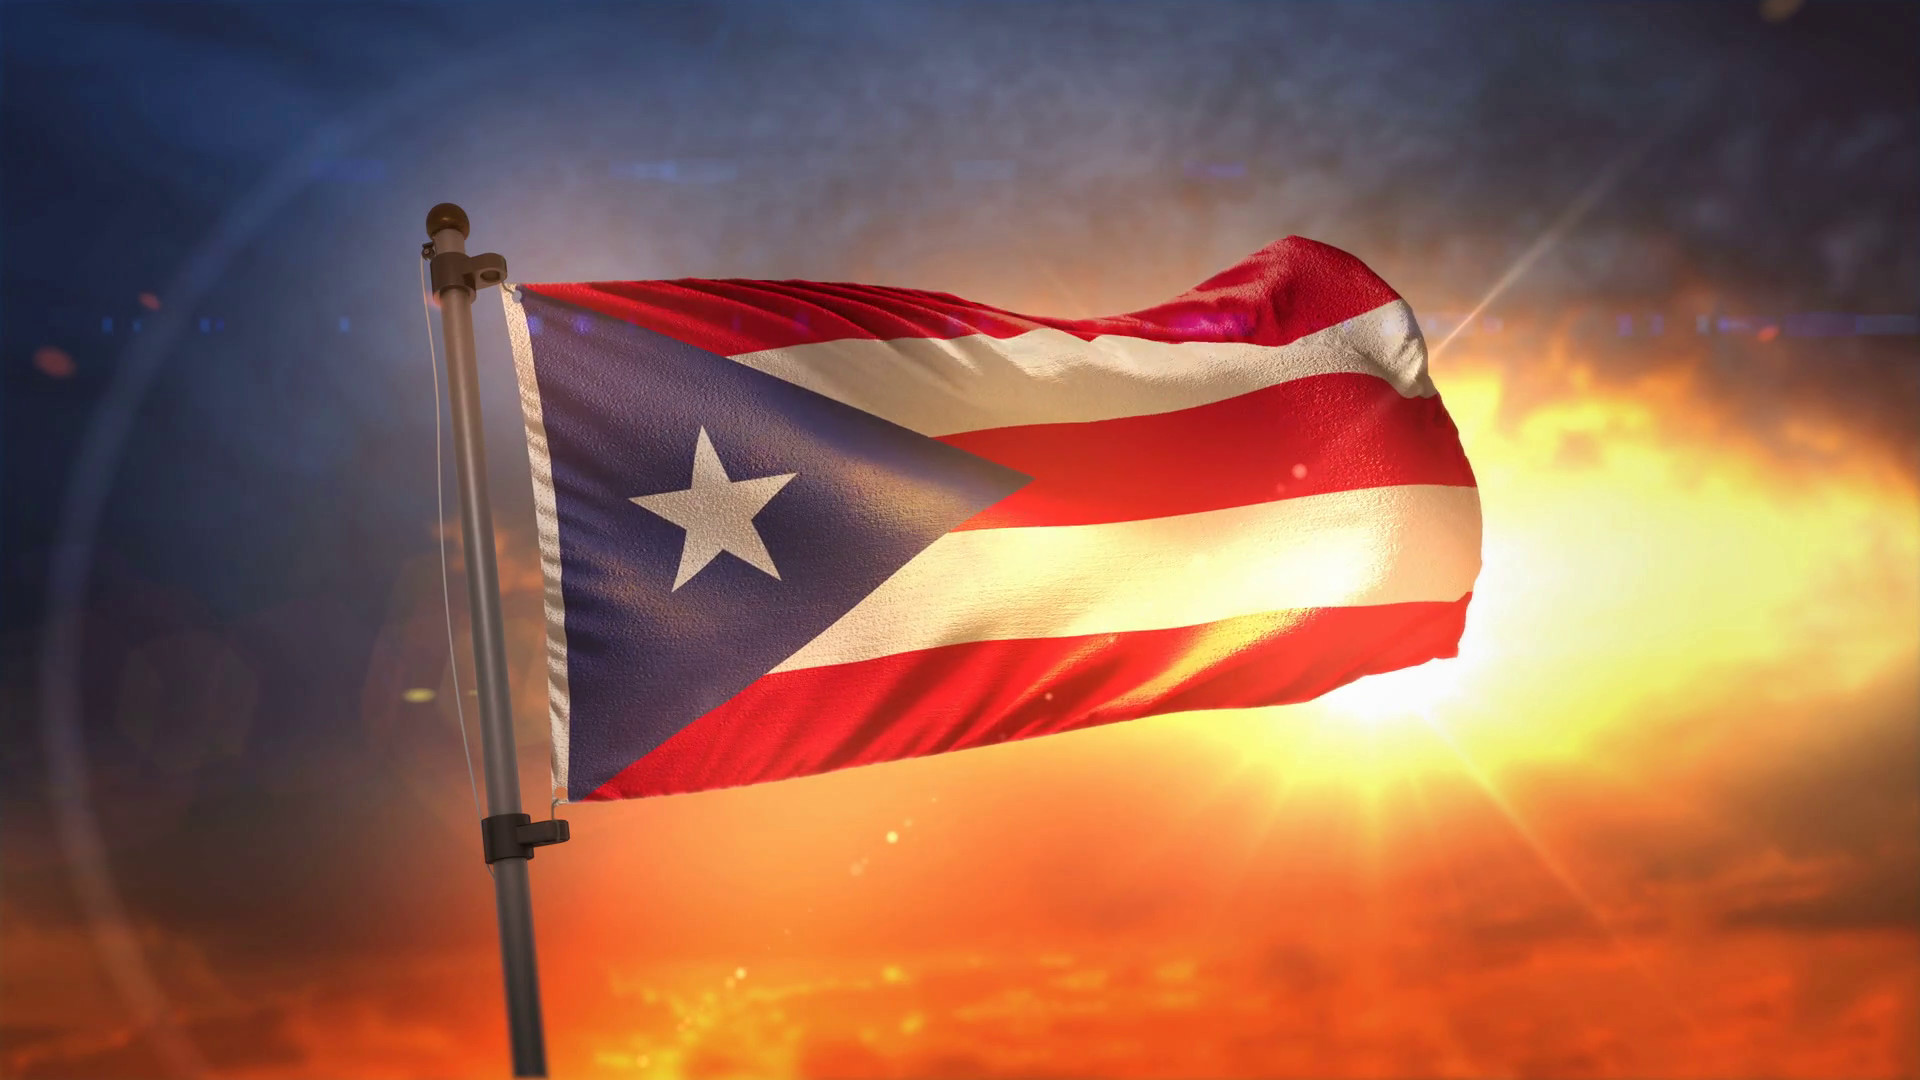 Puerto Rican Flag Background (43+ images)